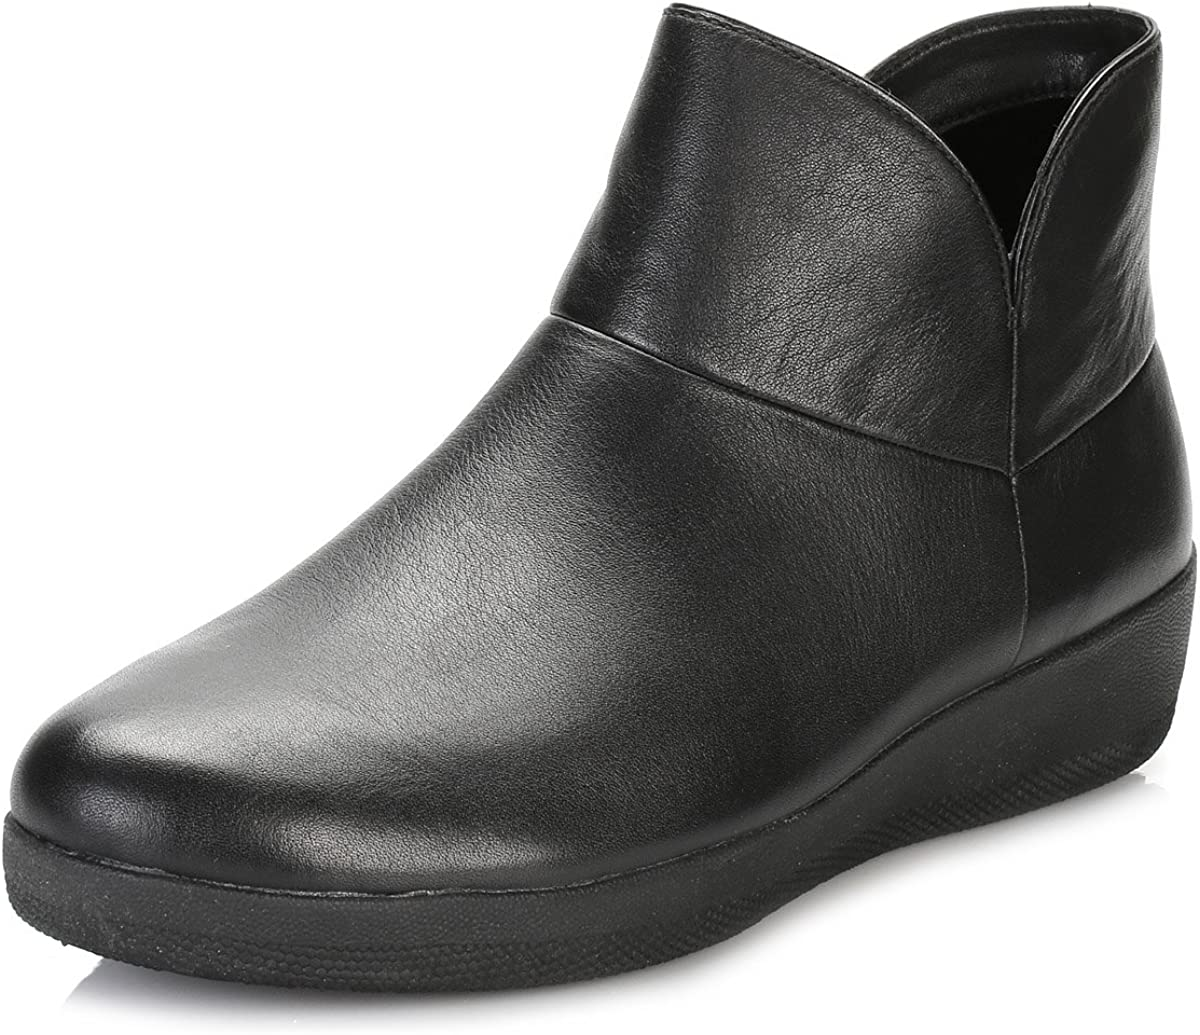 Top 10 Fit Flop Dash Boot